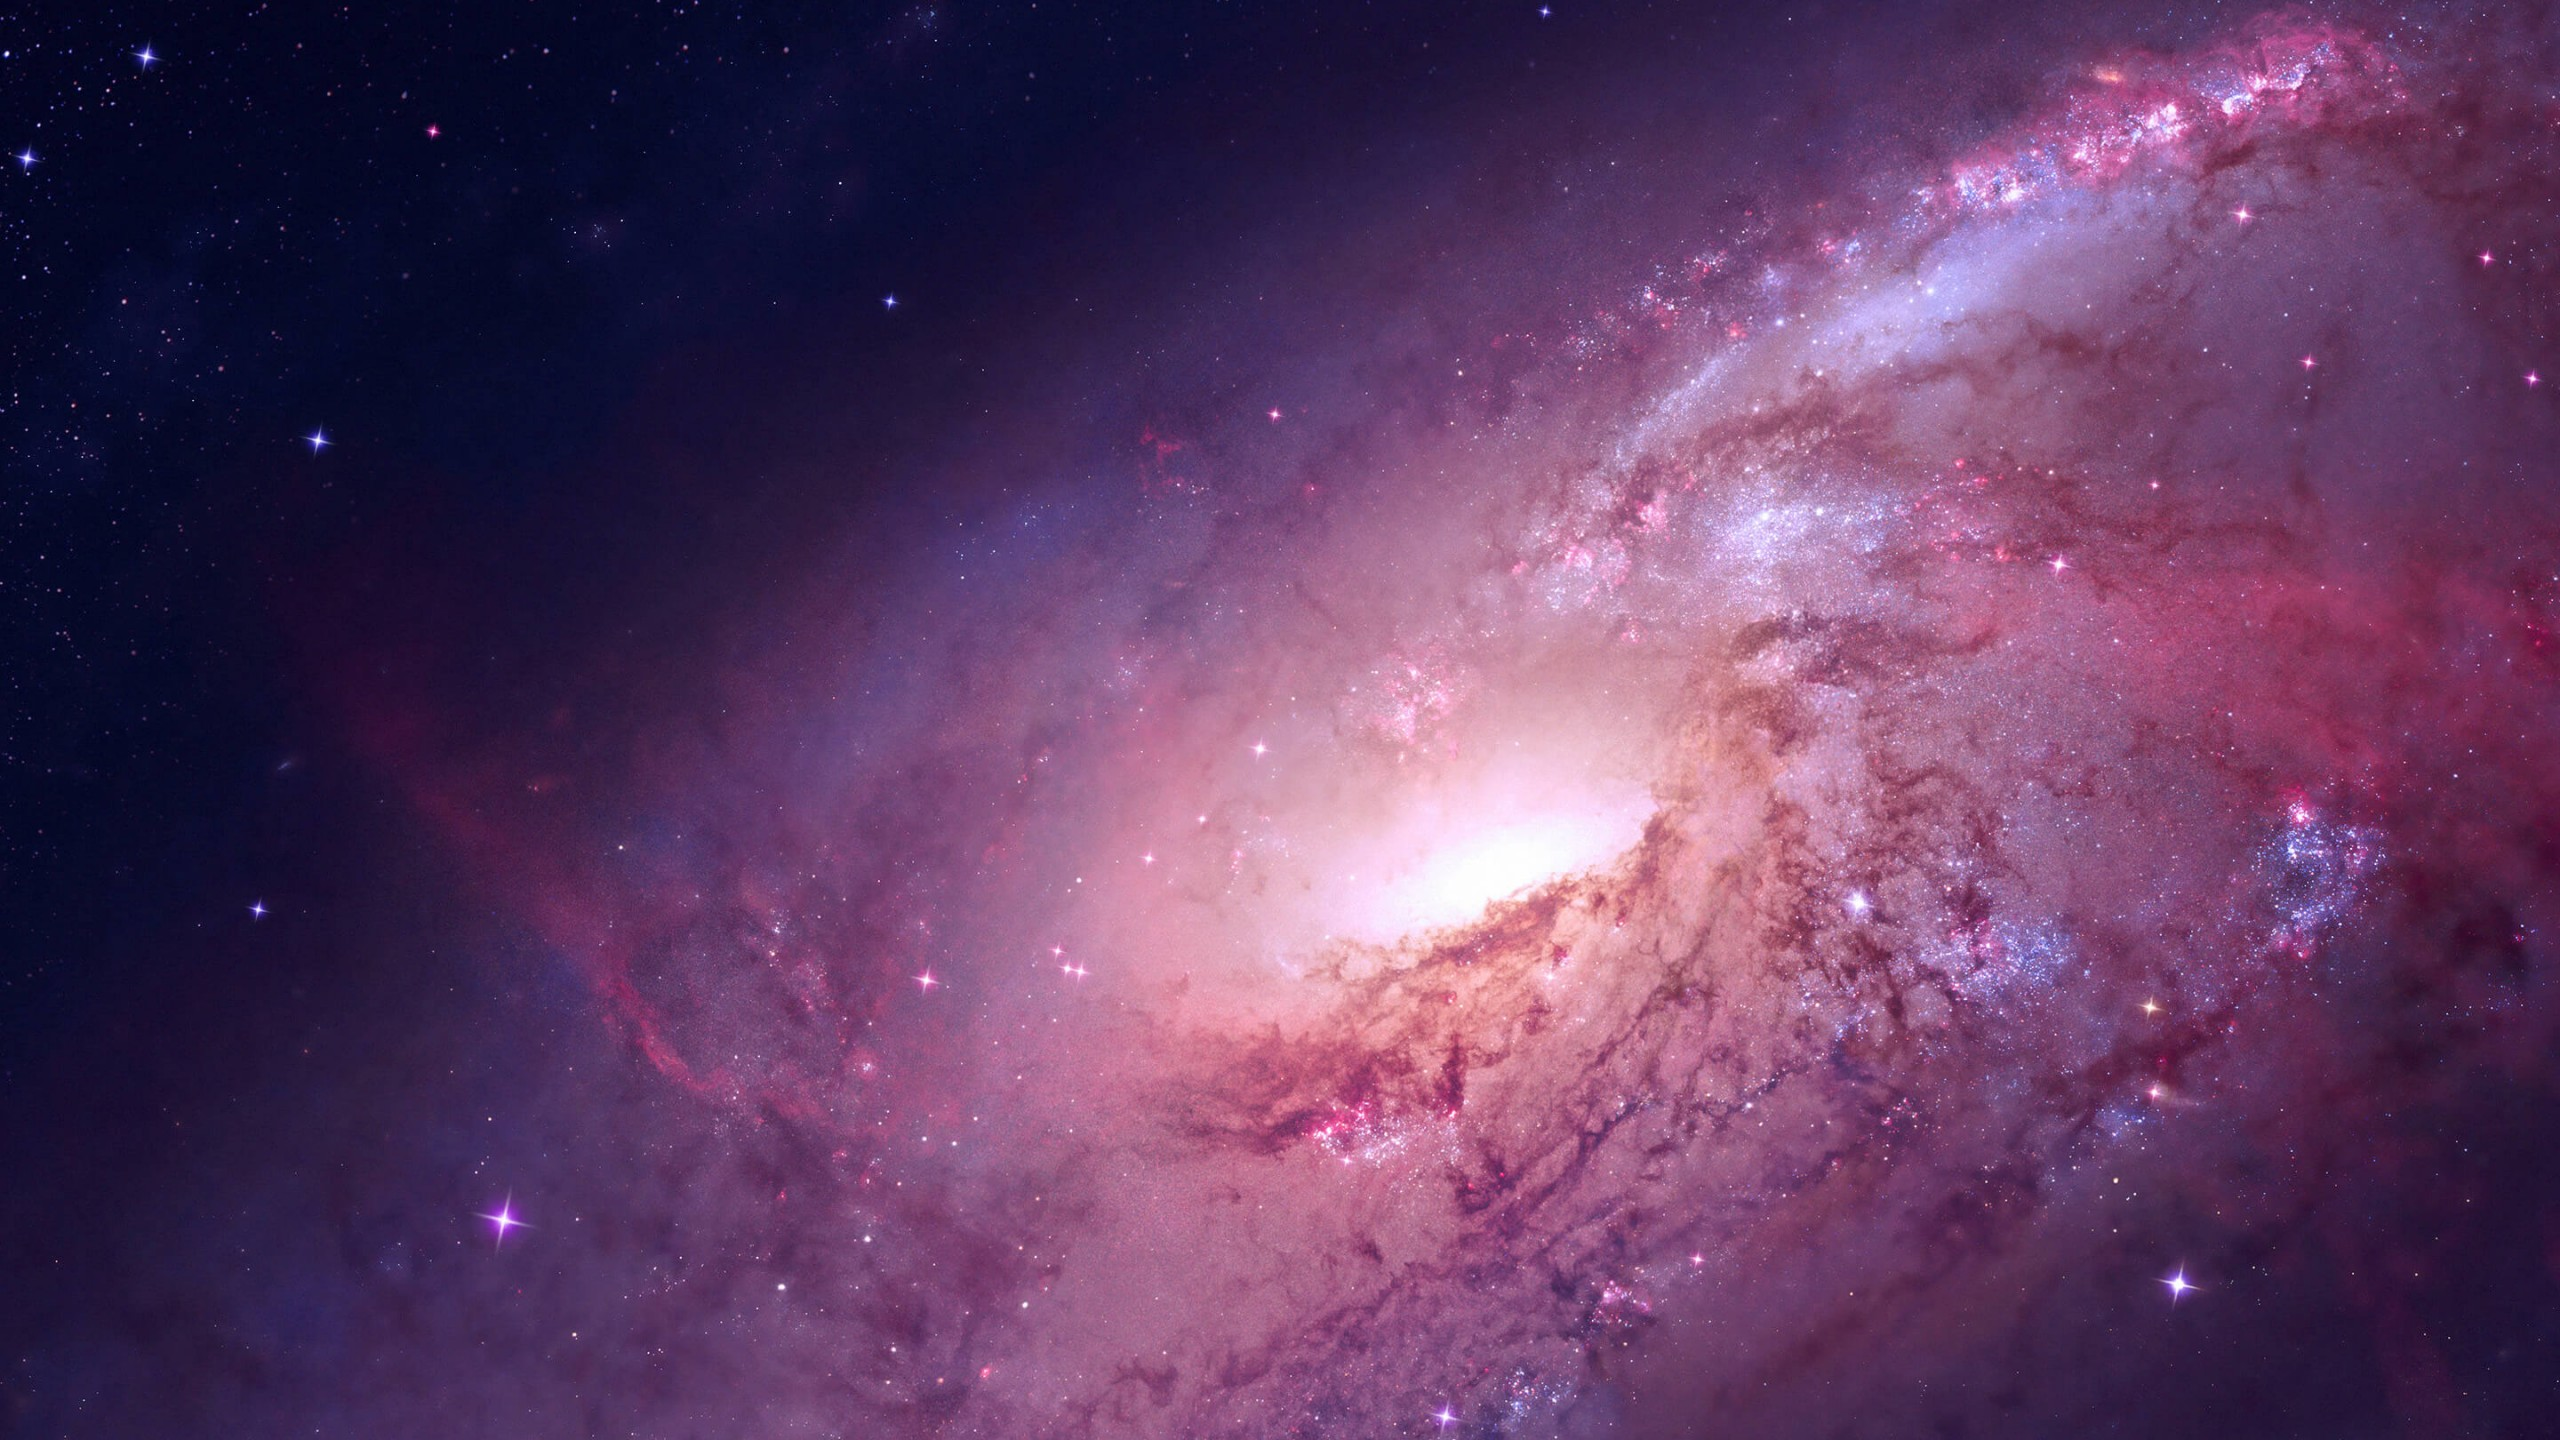 Galaxy M106 HD wallpaper for 2560 x 1440   HDwallpapersnet 2560x1440